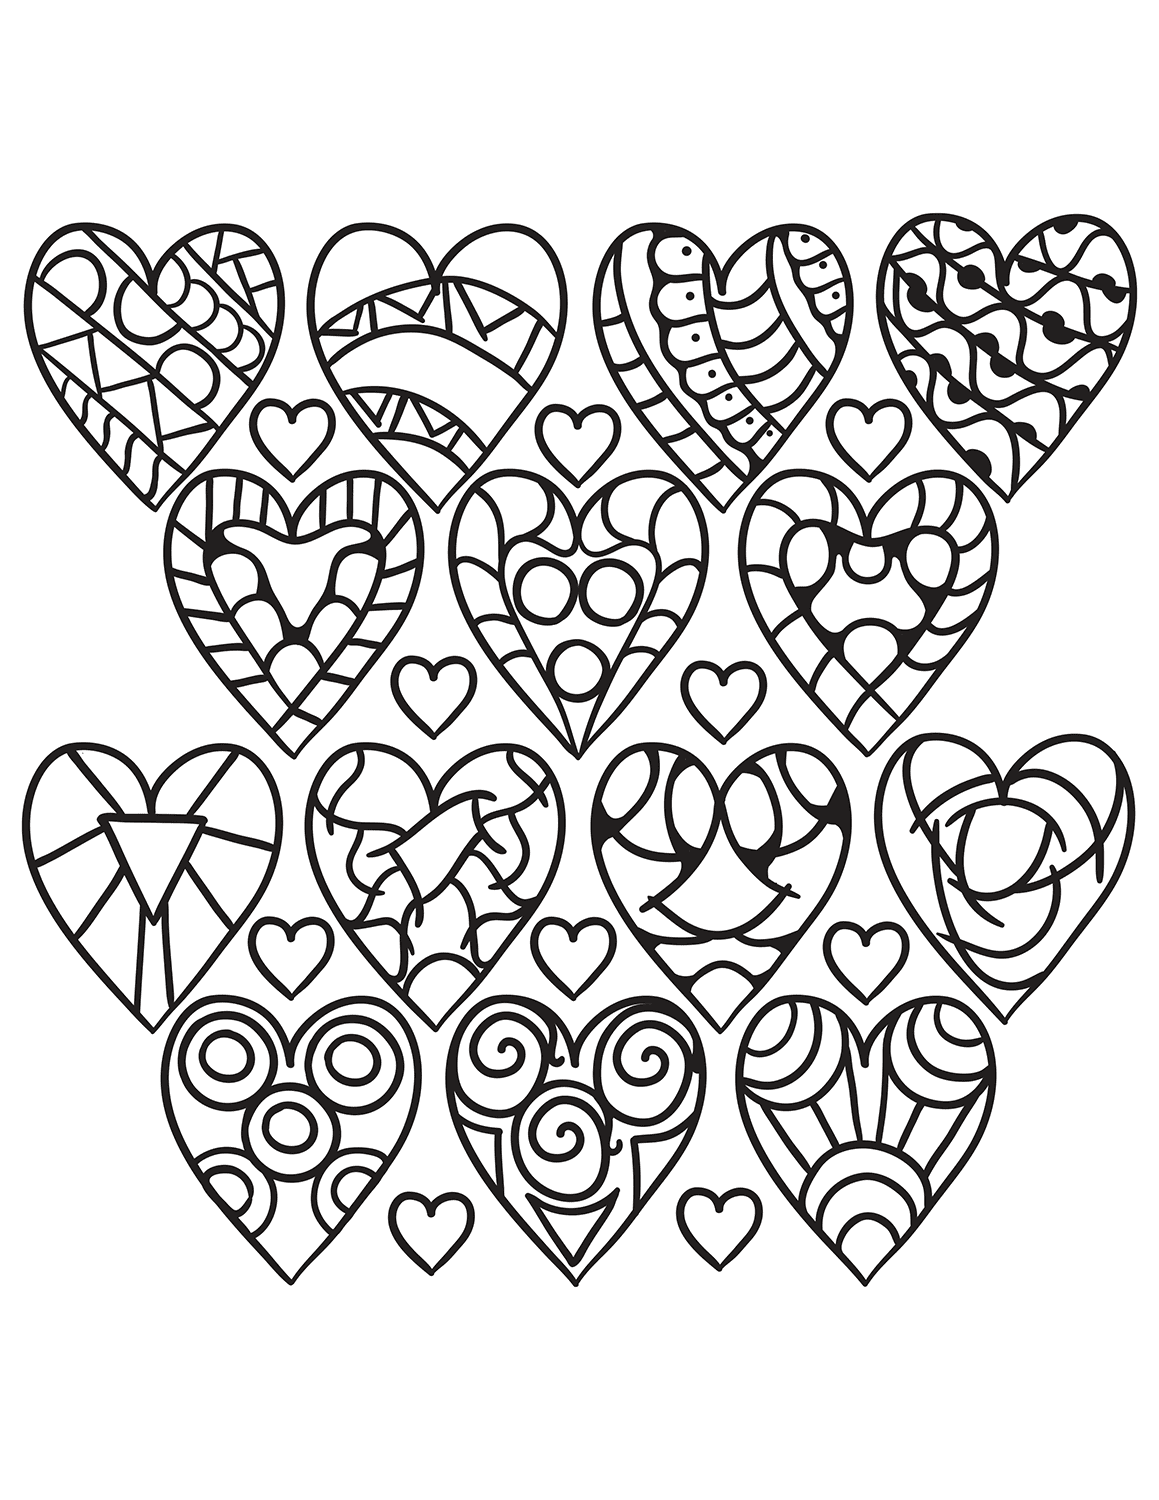 Coloring Pages : Heart Coloring Pages For Adults Image Ideas ...